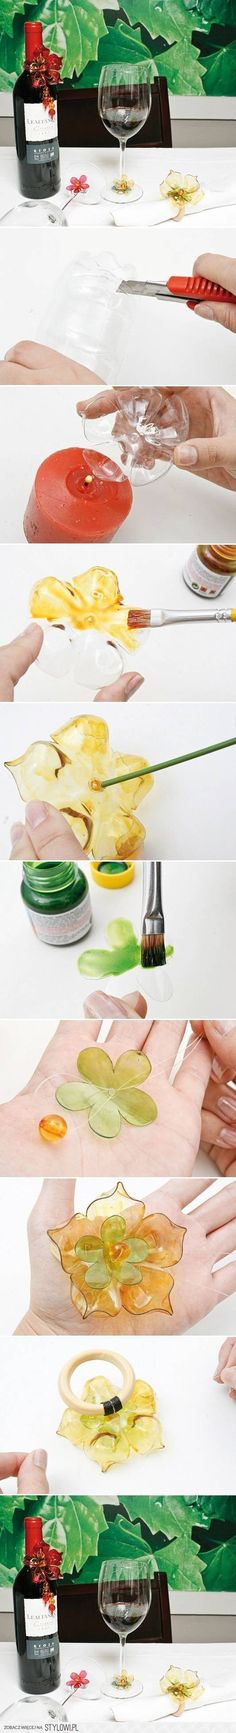 DIY Plastic Bottle Napkin Ring DIY Projects | UsefulDIY… na Stylowi.pl